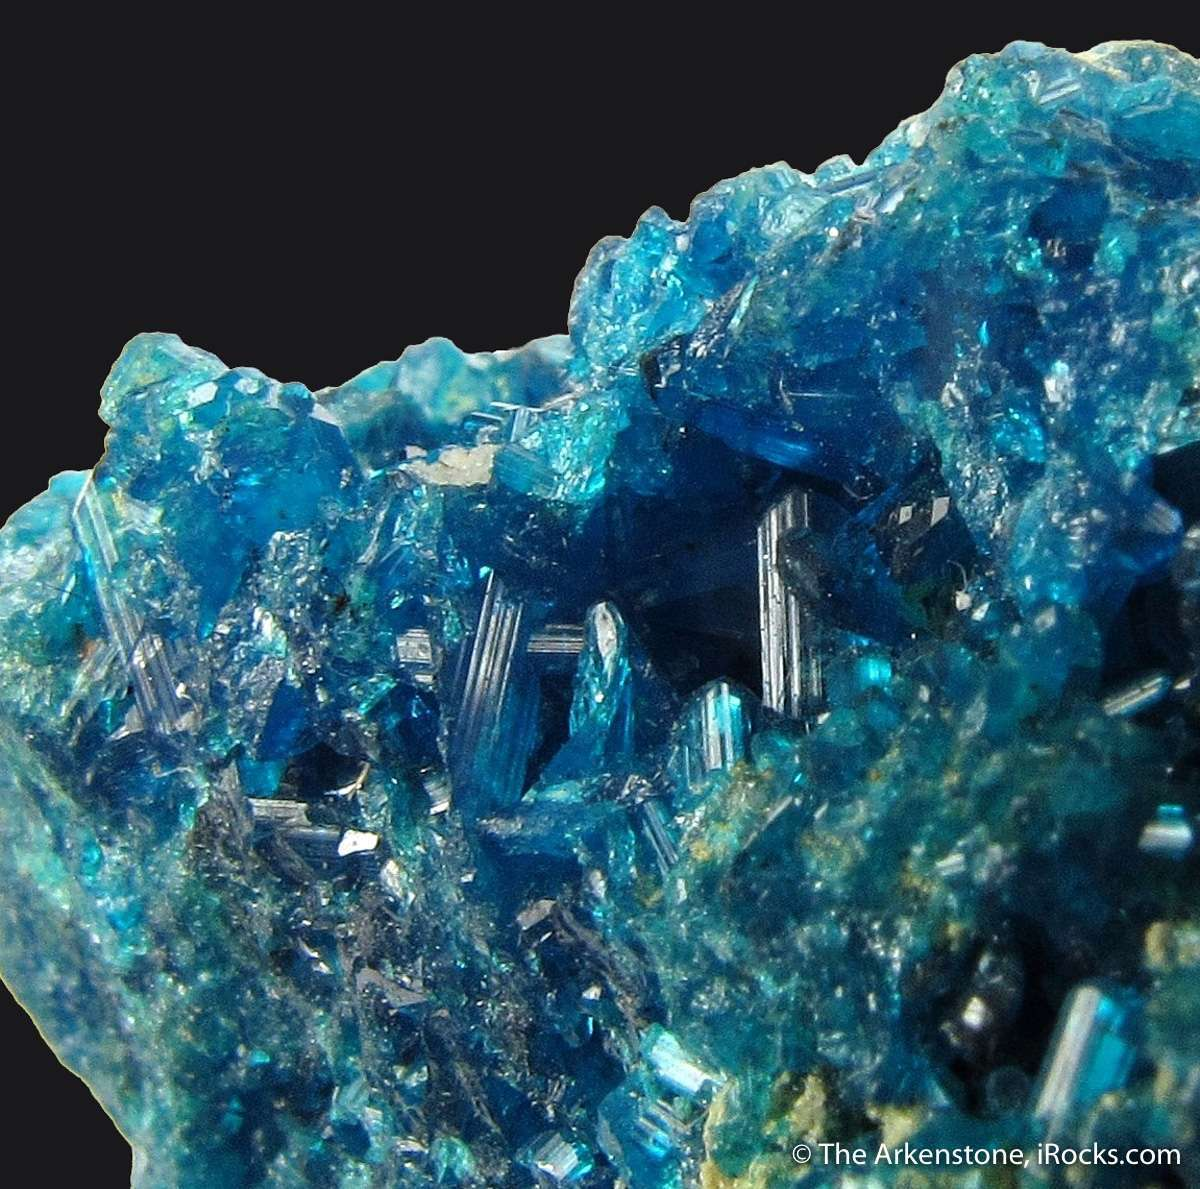 A rich sparkling specimen copper lead sulphate Caledonite The crystals